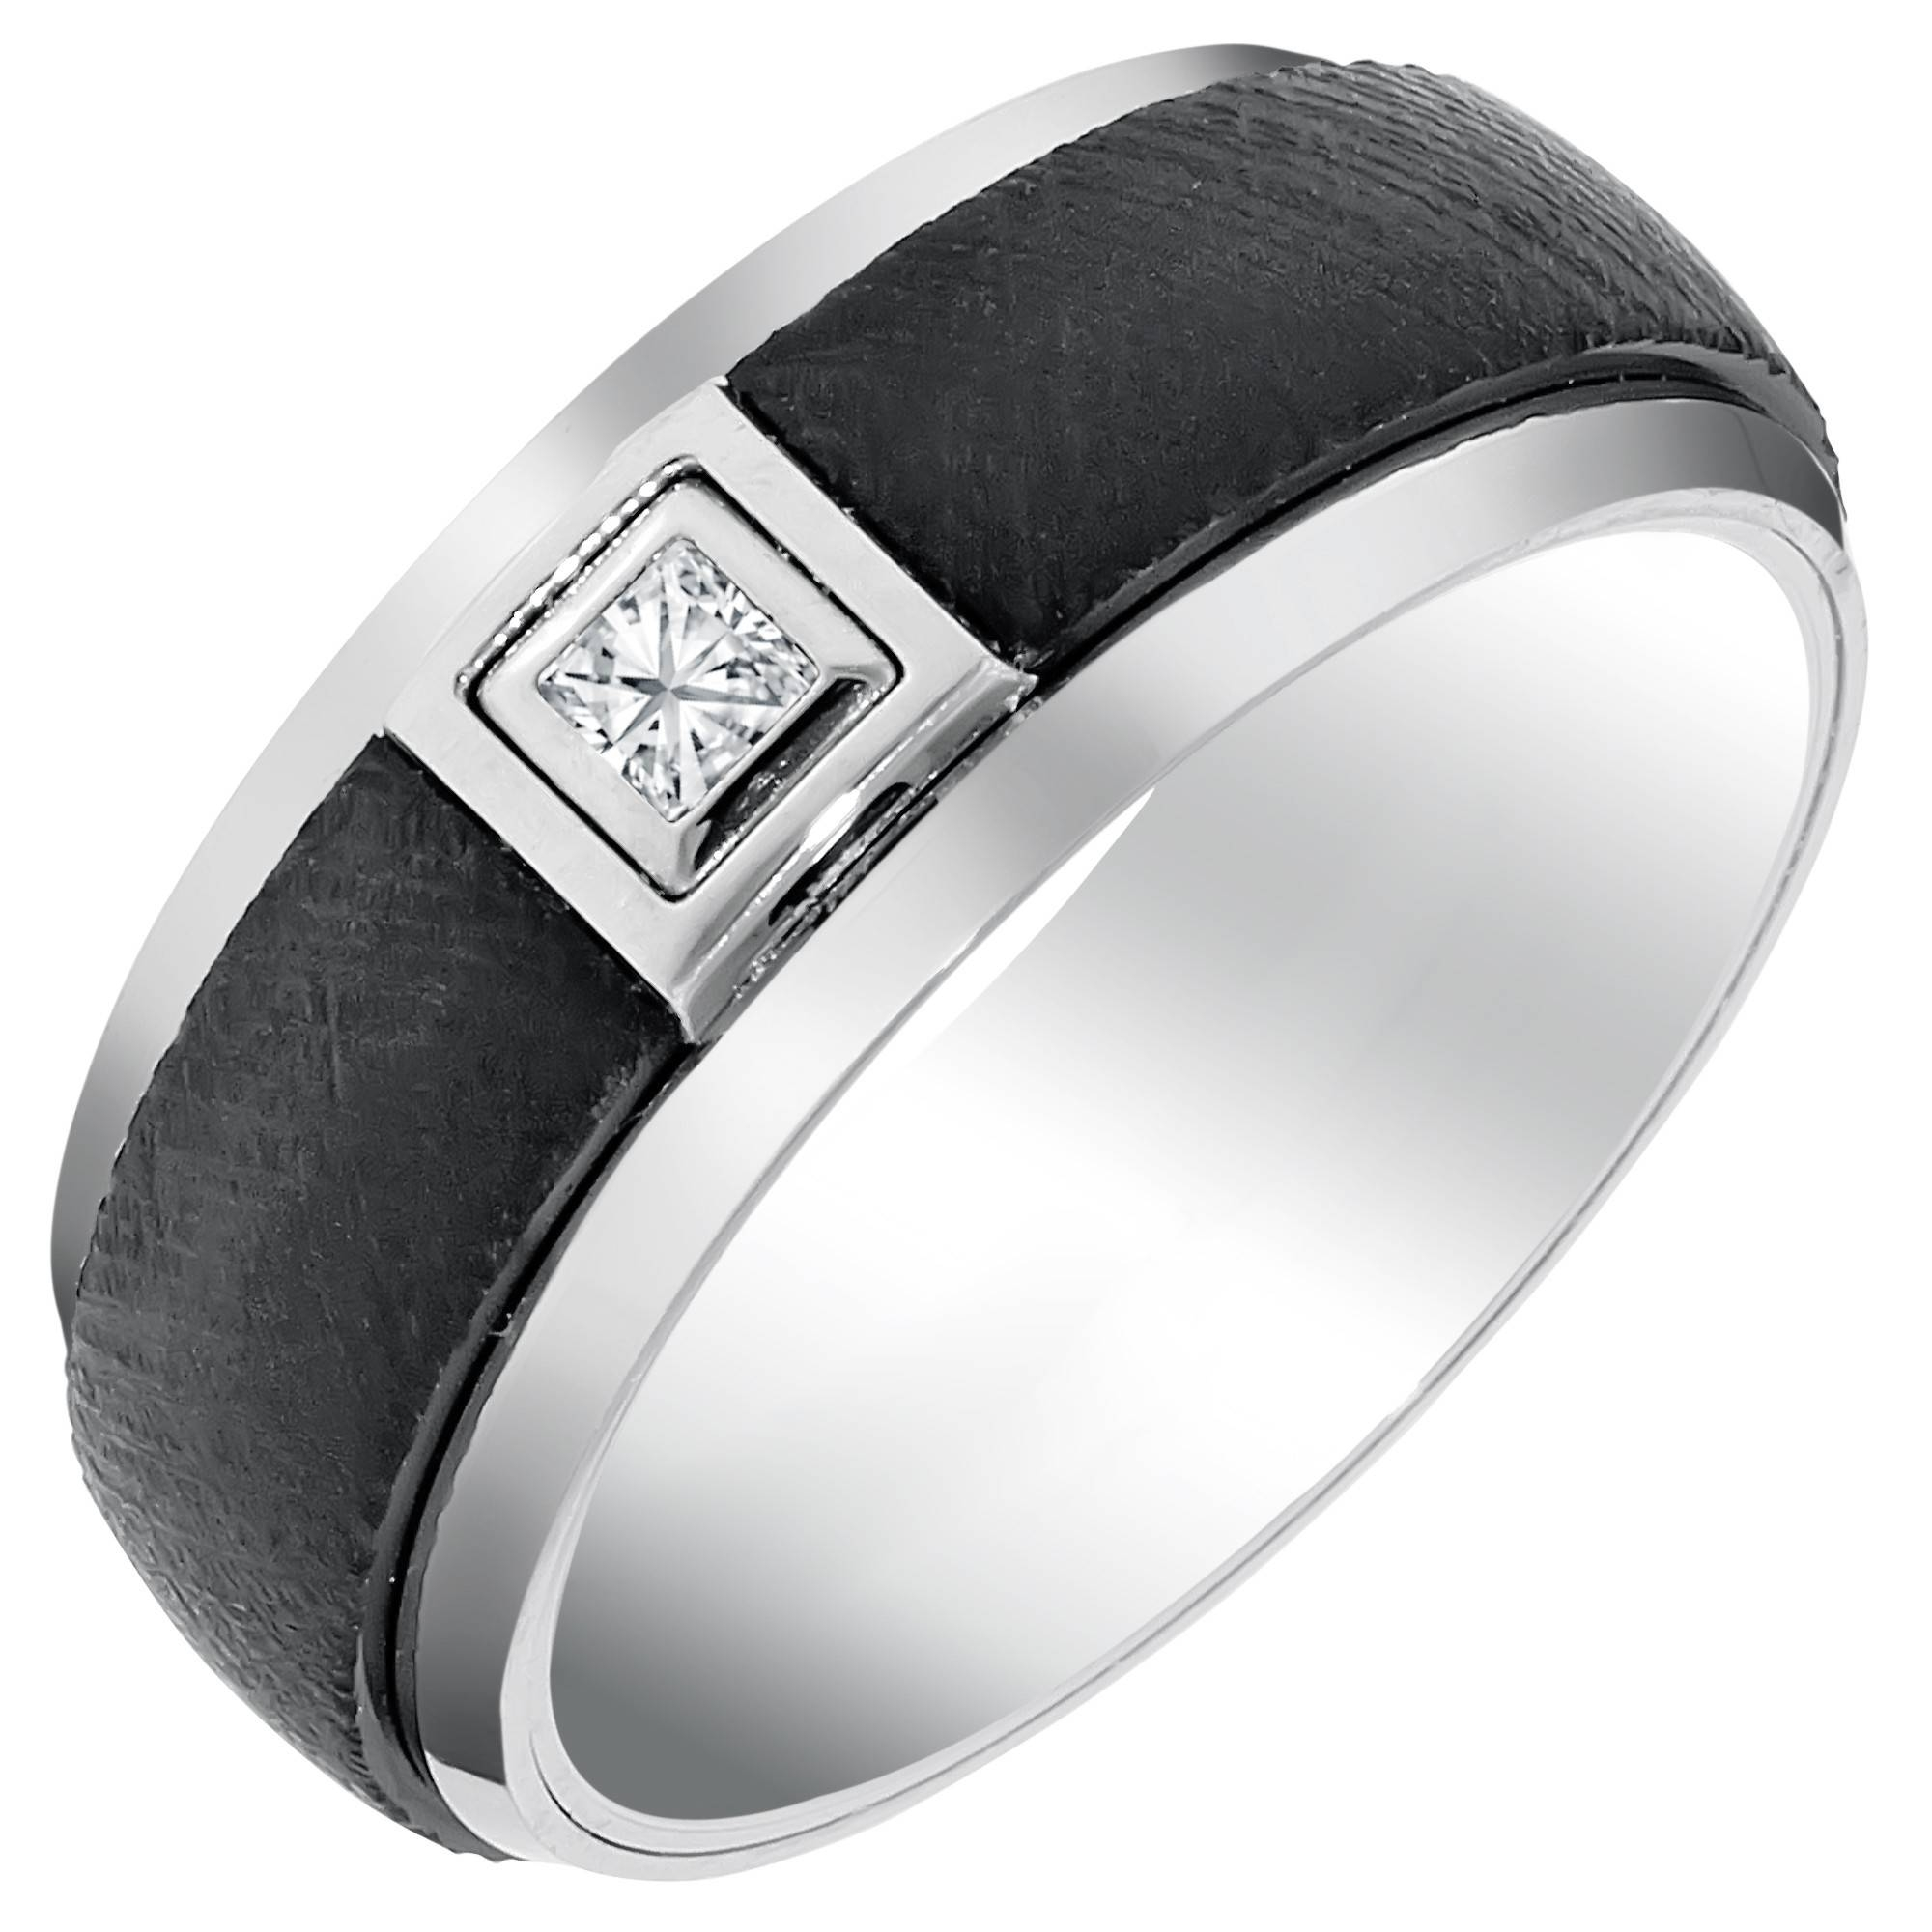 Mens Comfort Fit Wedding Band With Diamond In White And Black Within Mens Black Tungsten Wedding Bands With Diamonds (View 8 of 15)